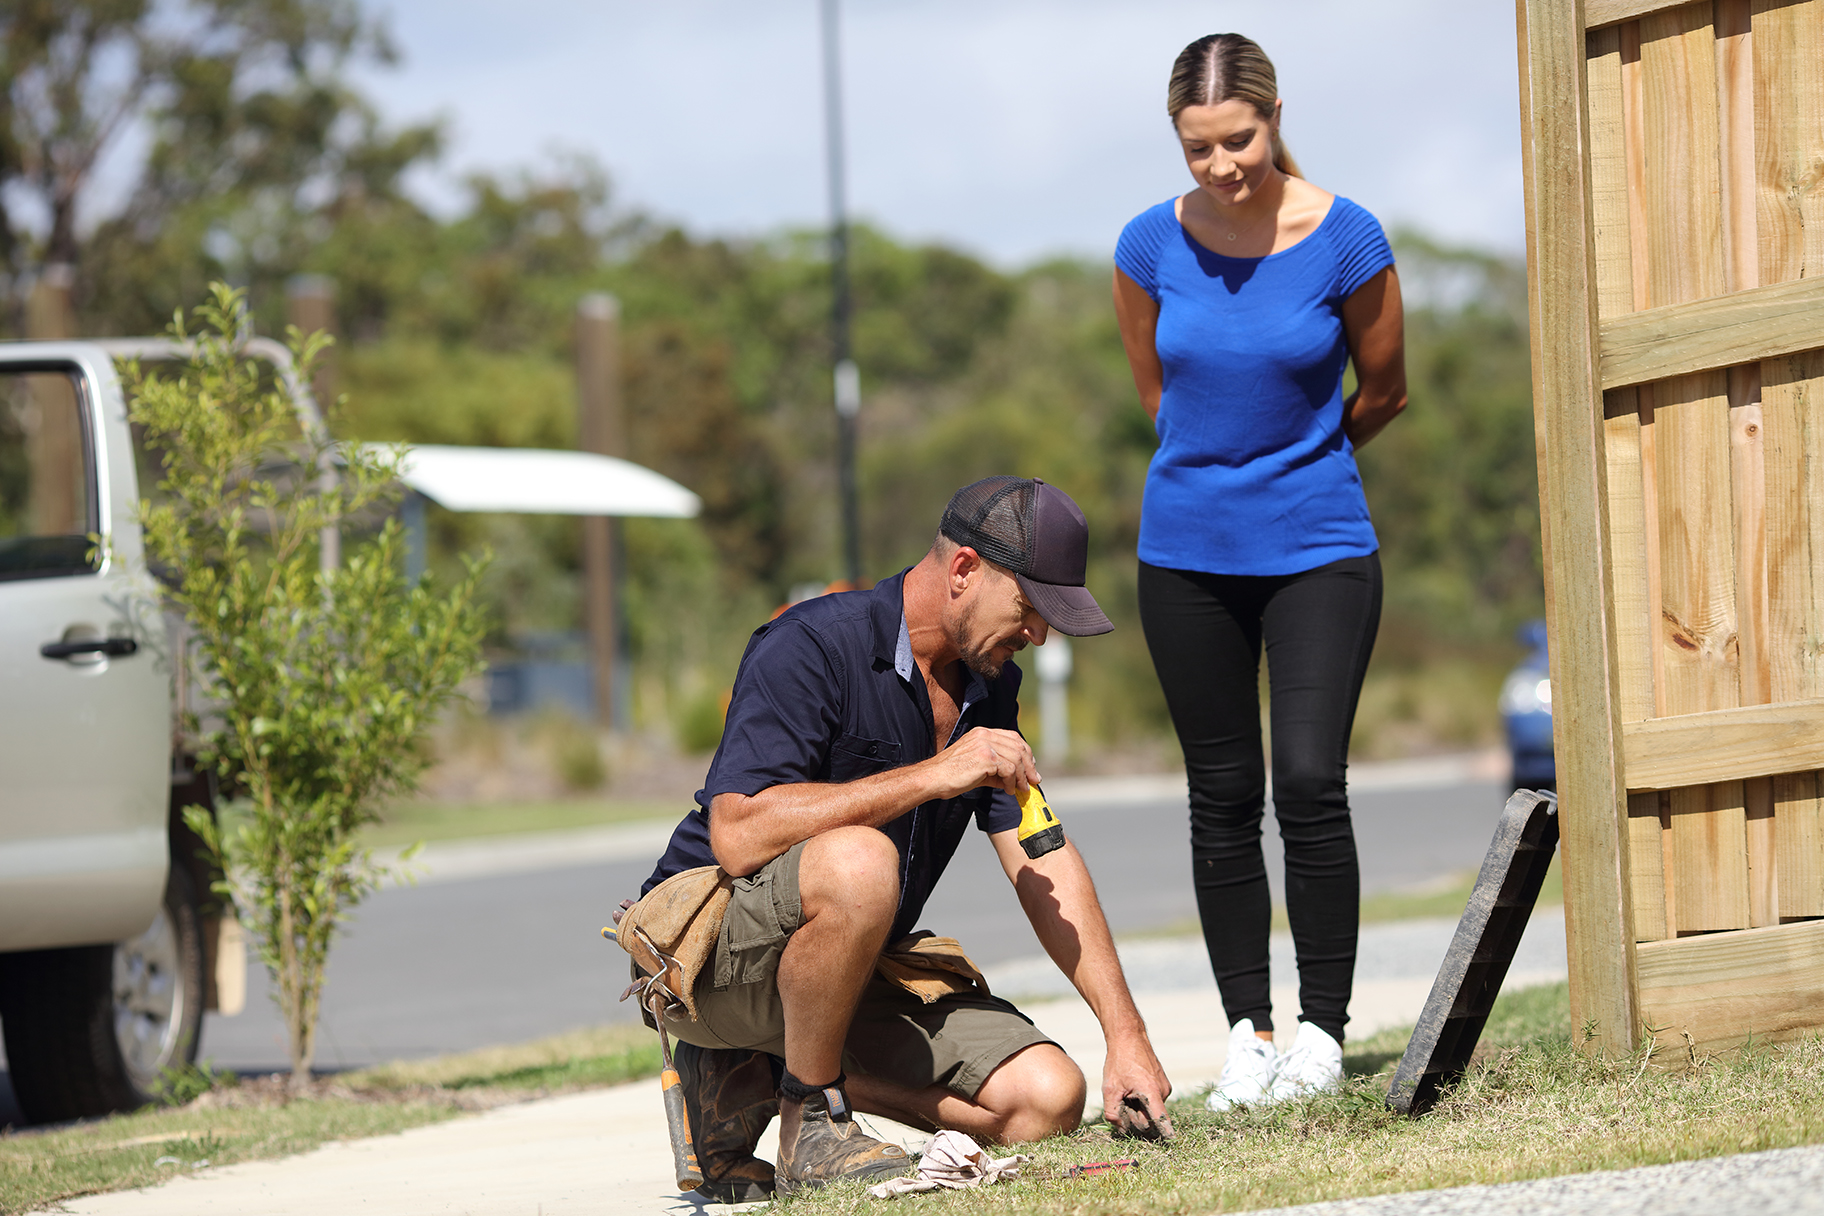 Plumber and woman looking into water meter box in front of residential house